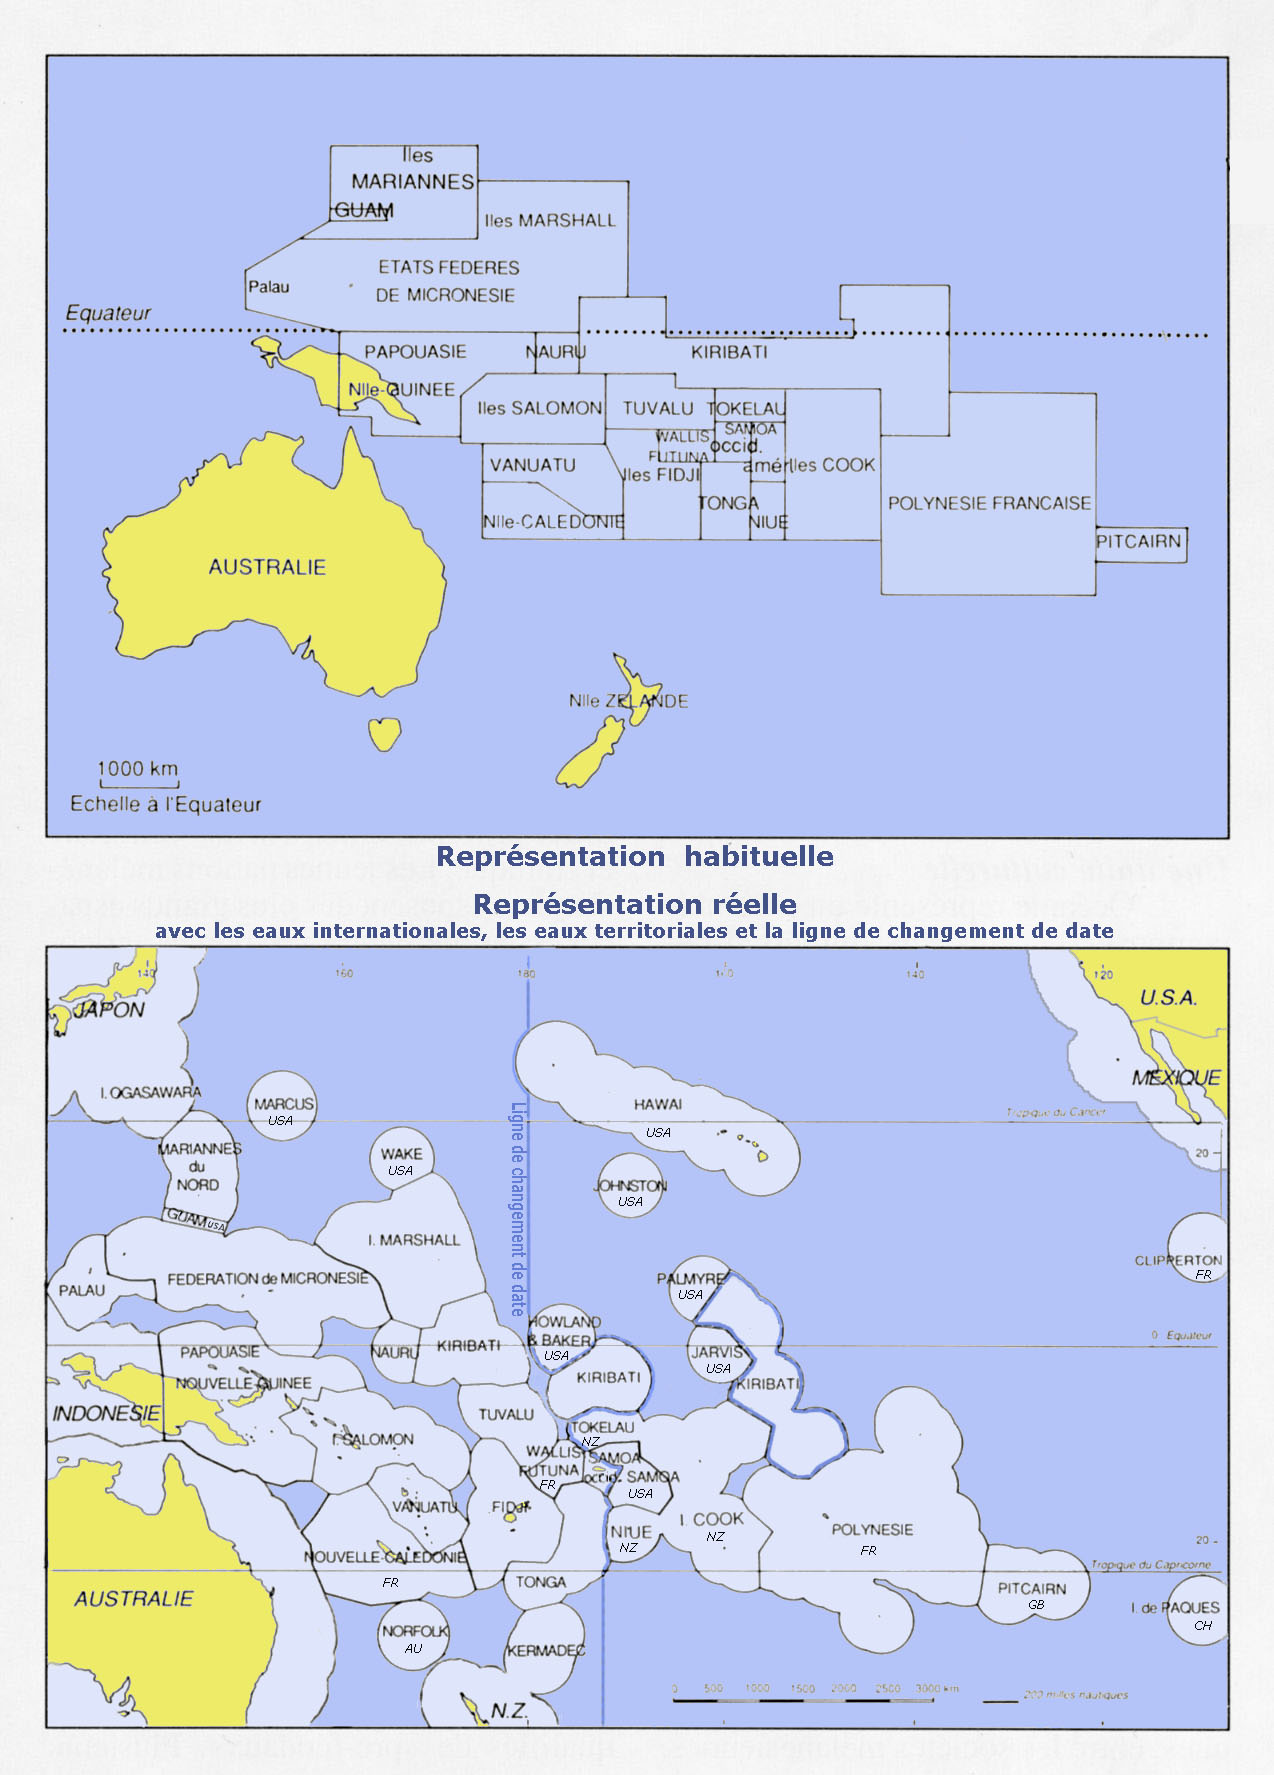 Map of Oceania Countries Only